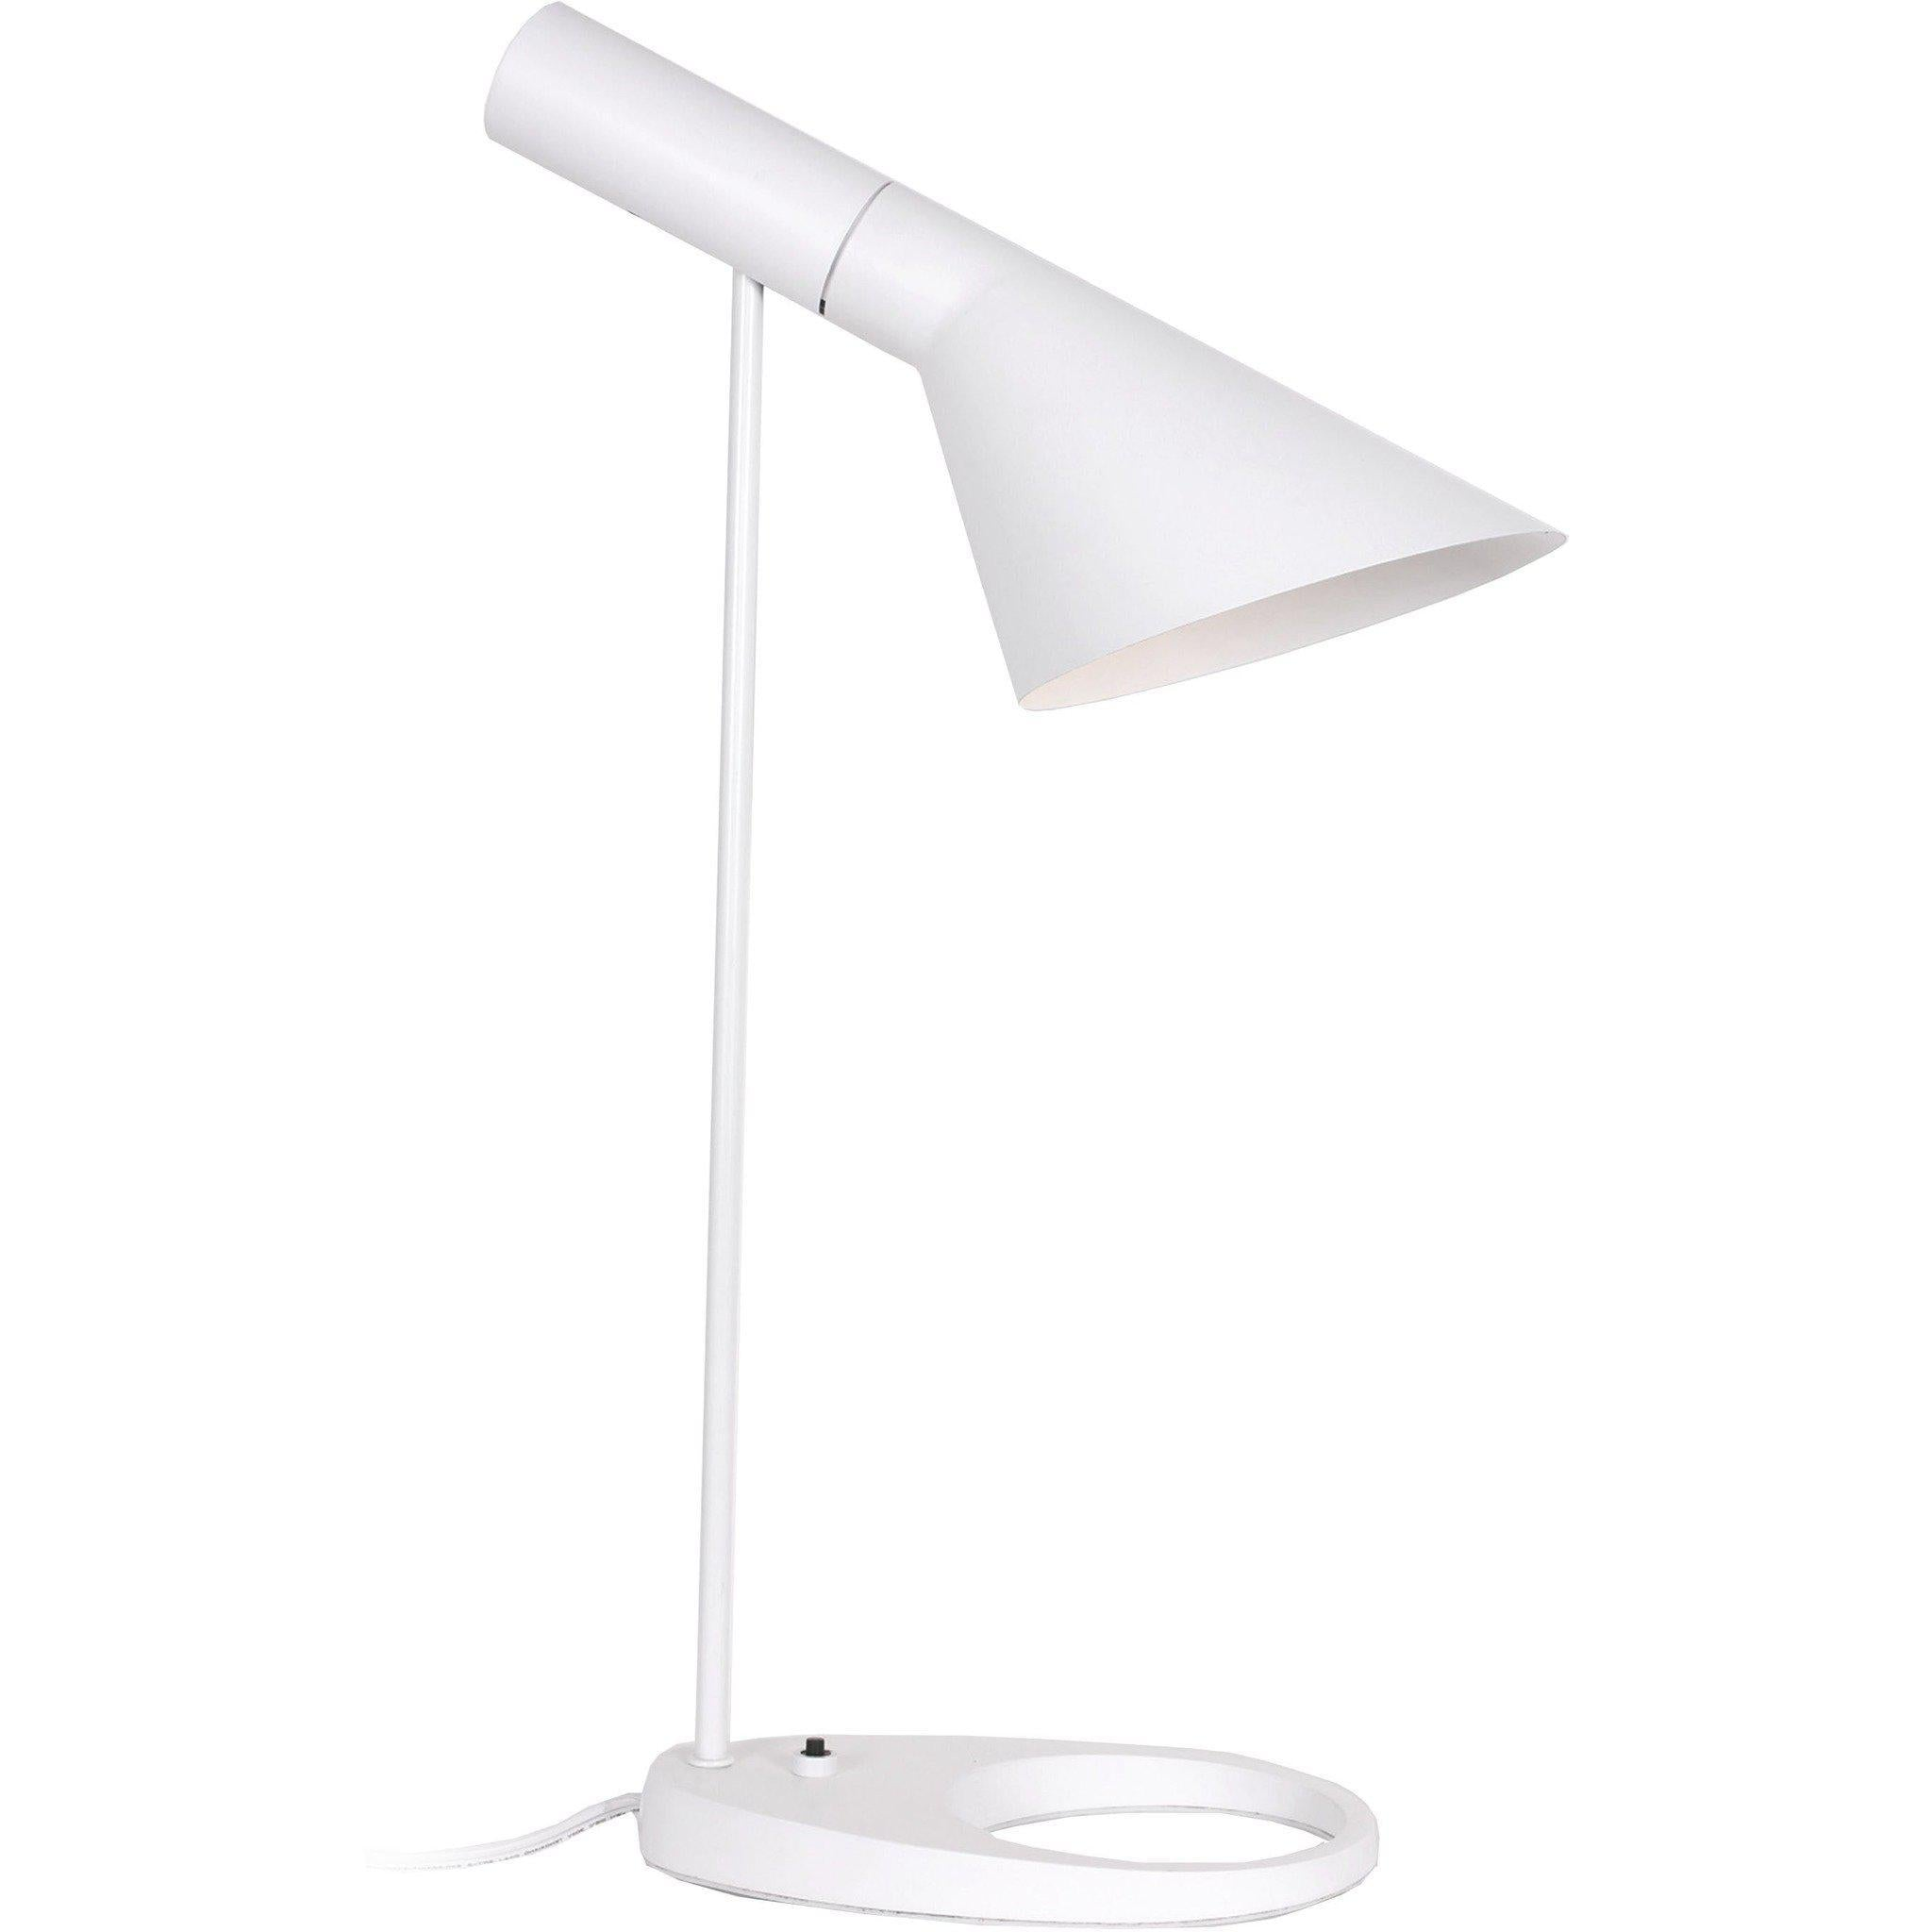 [LBT002WHITE] The AJ Table Lamp